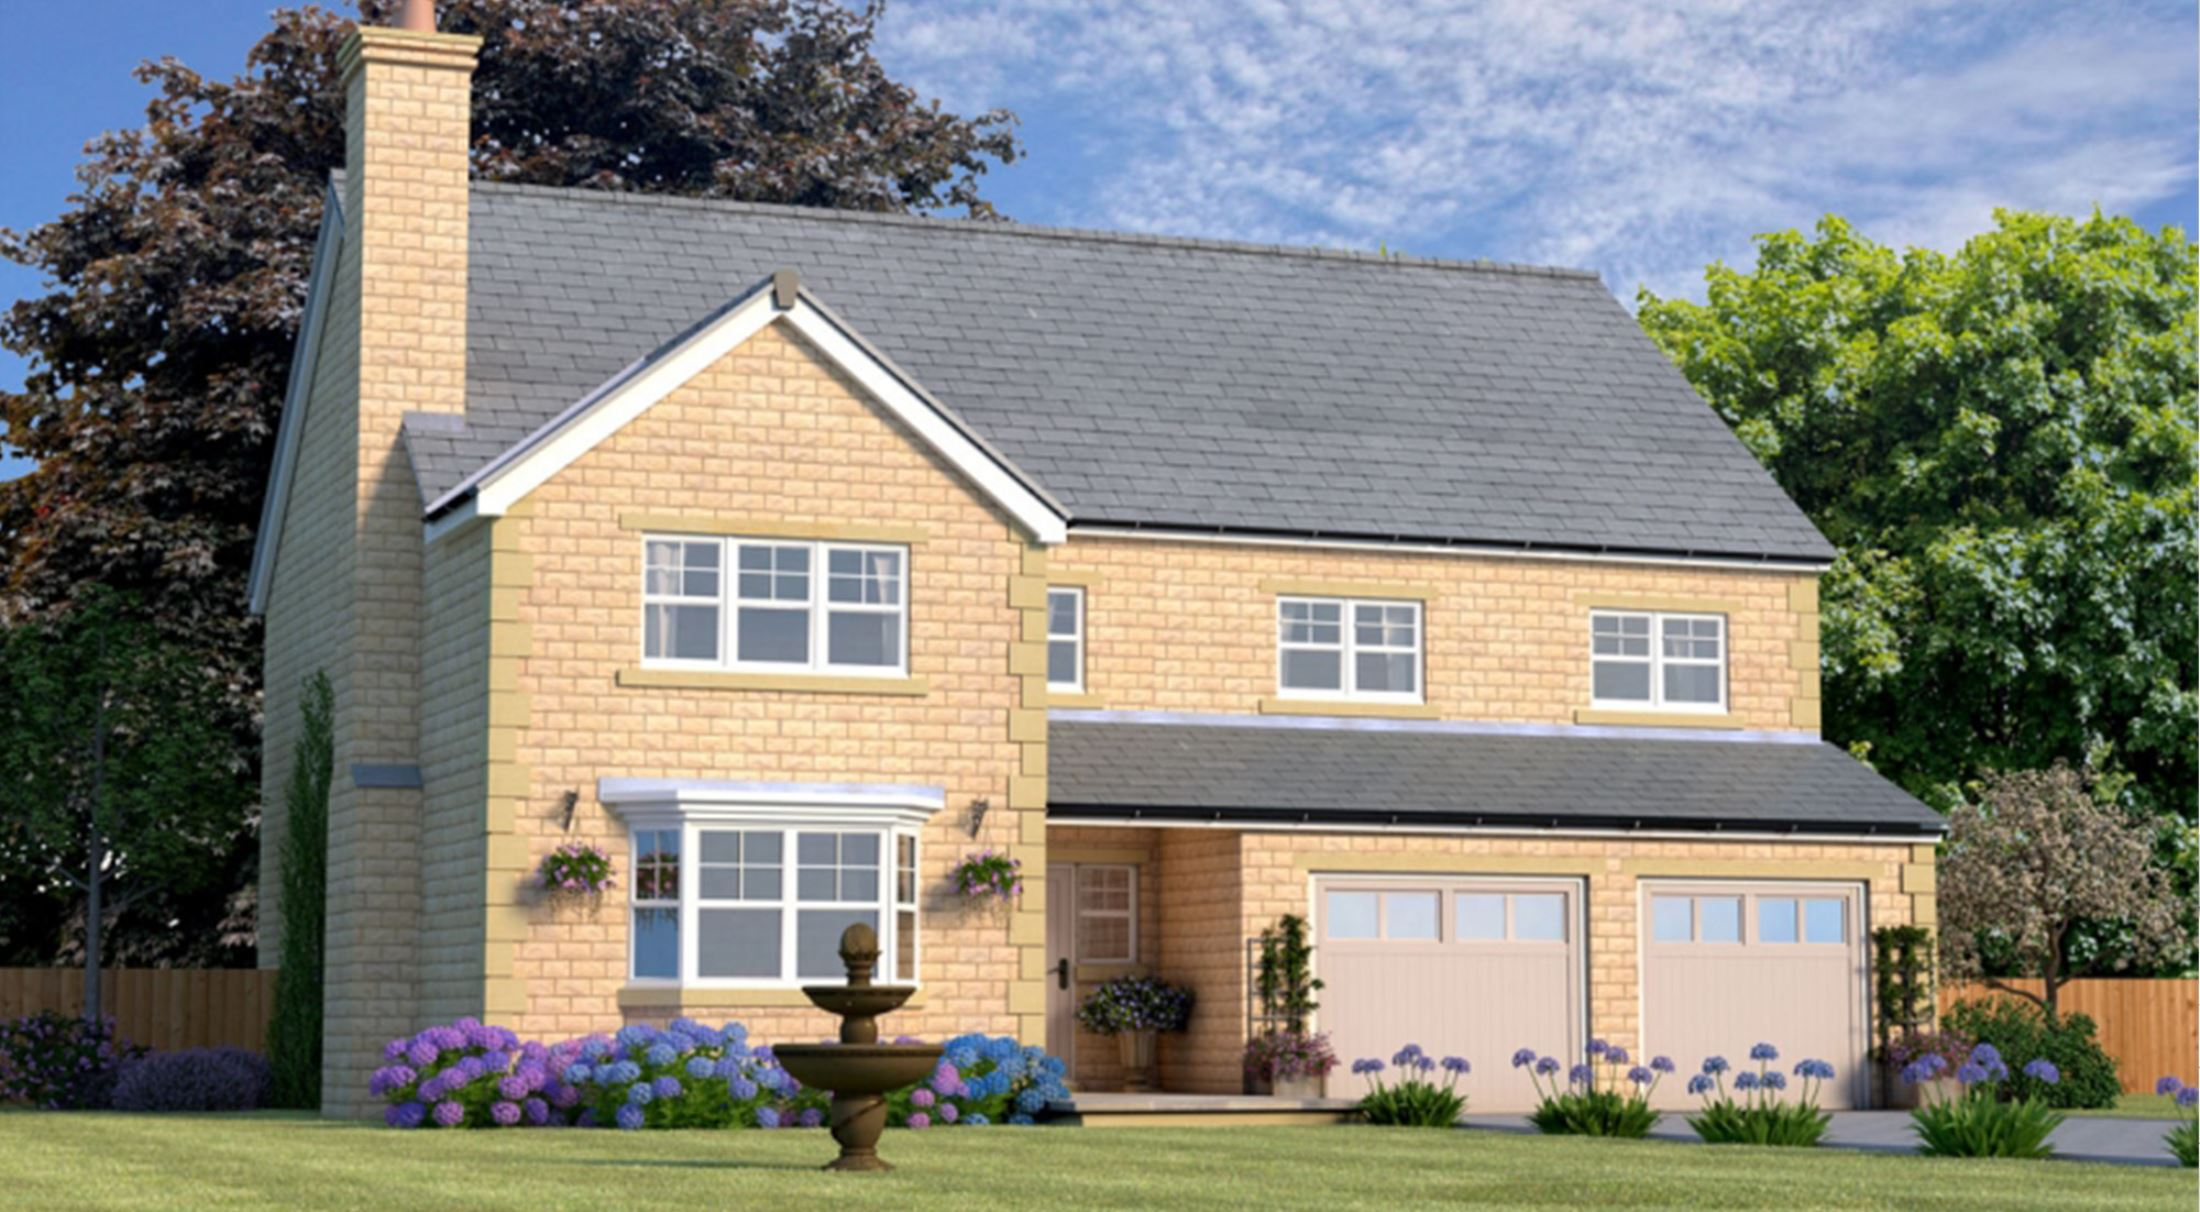 The Balmoral 5 Bed Home In Menston Chartford Homes